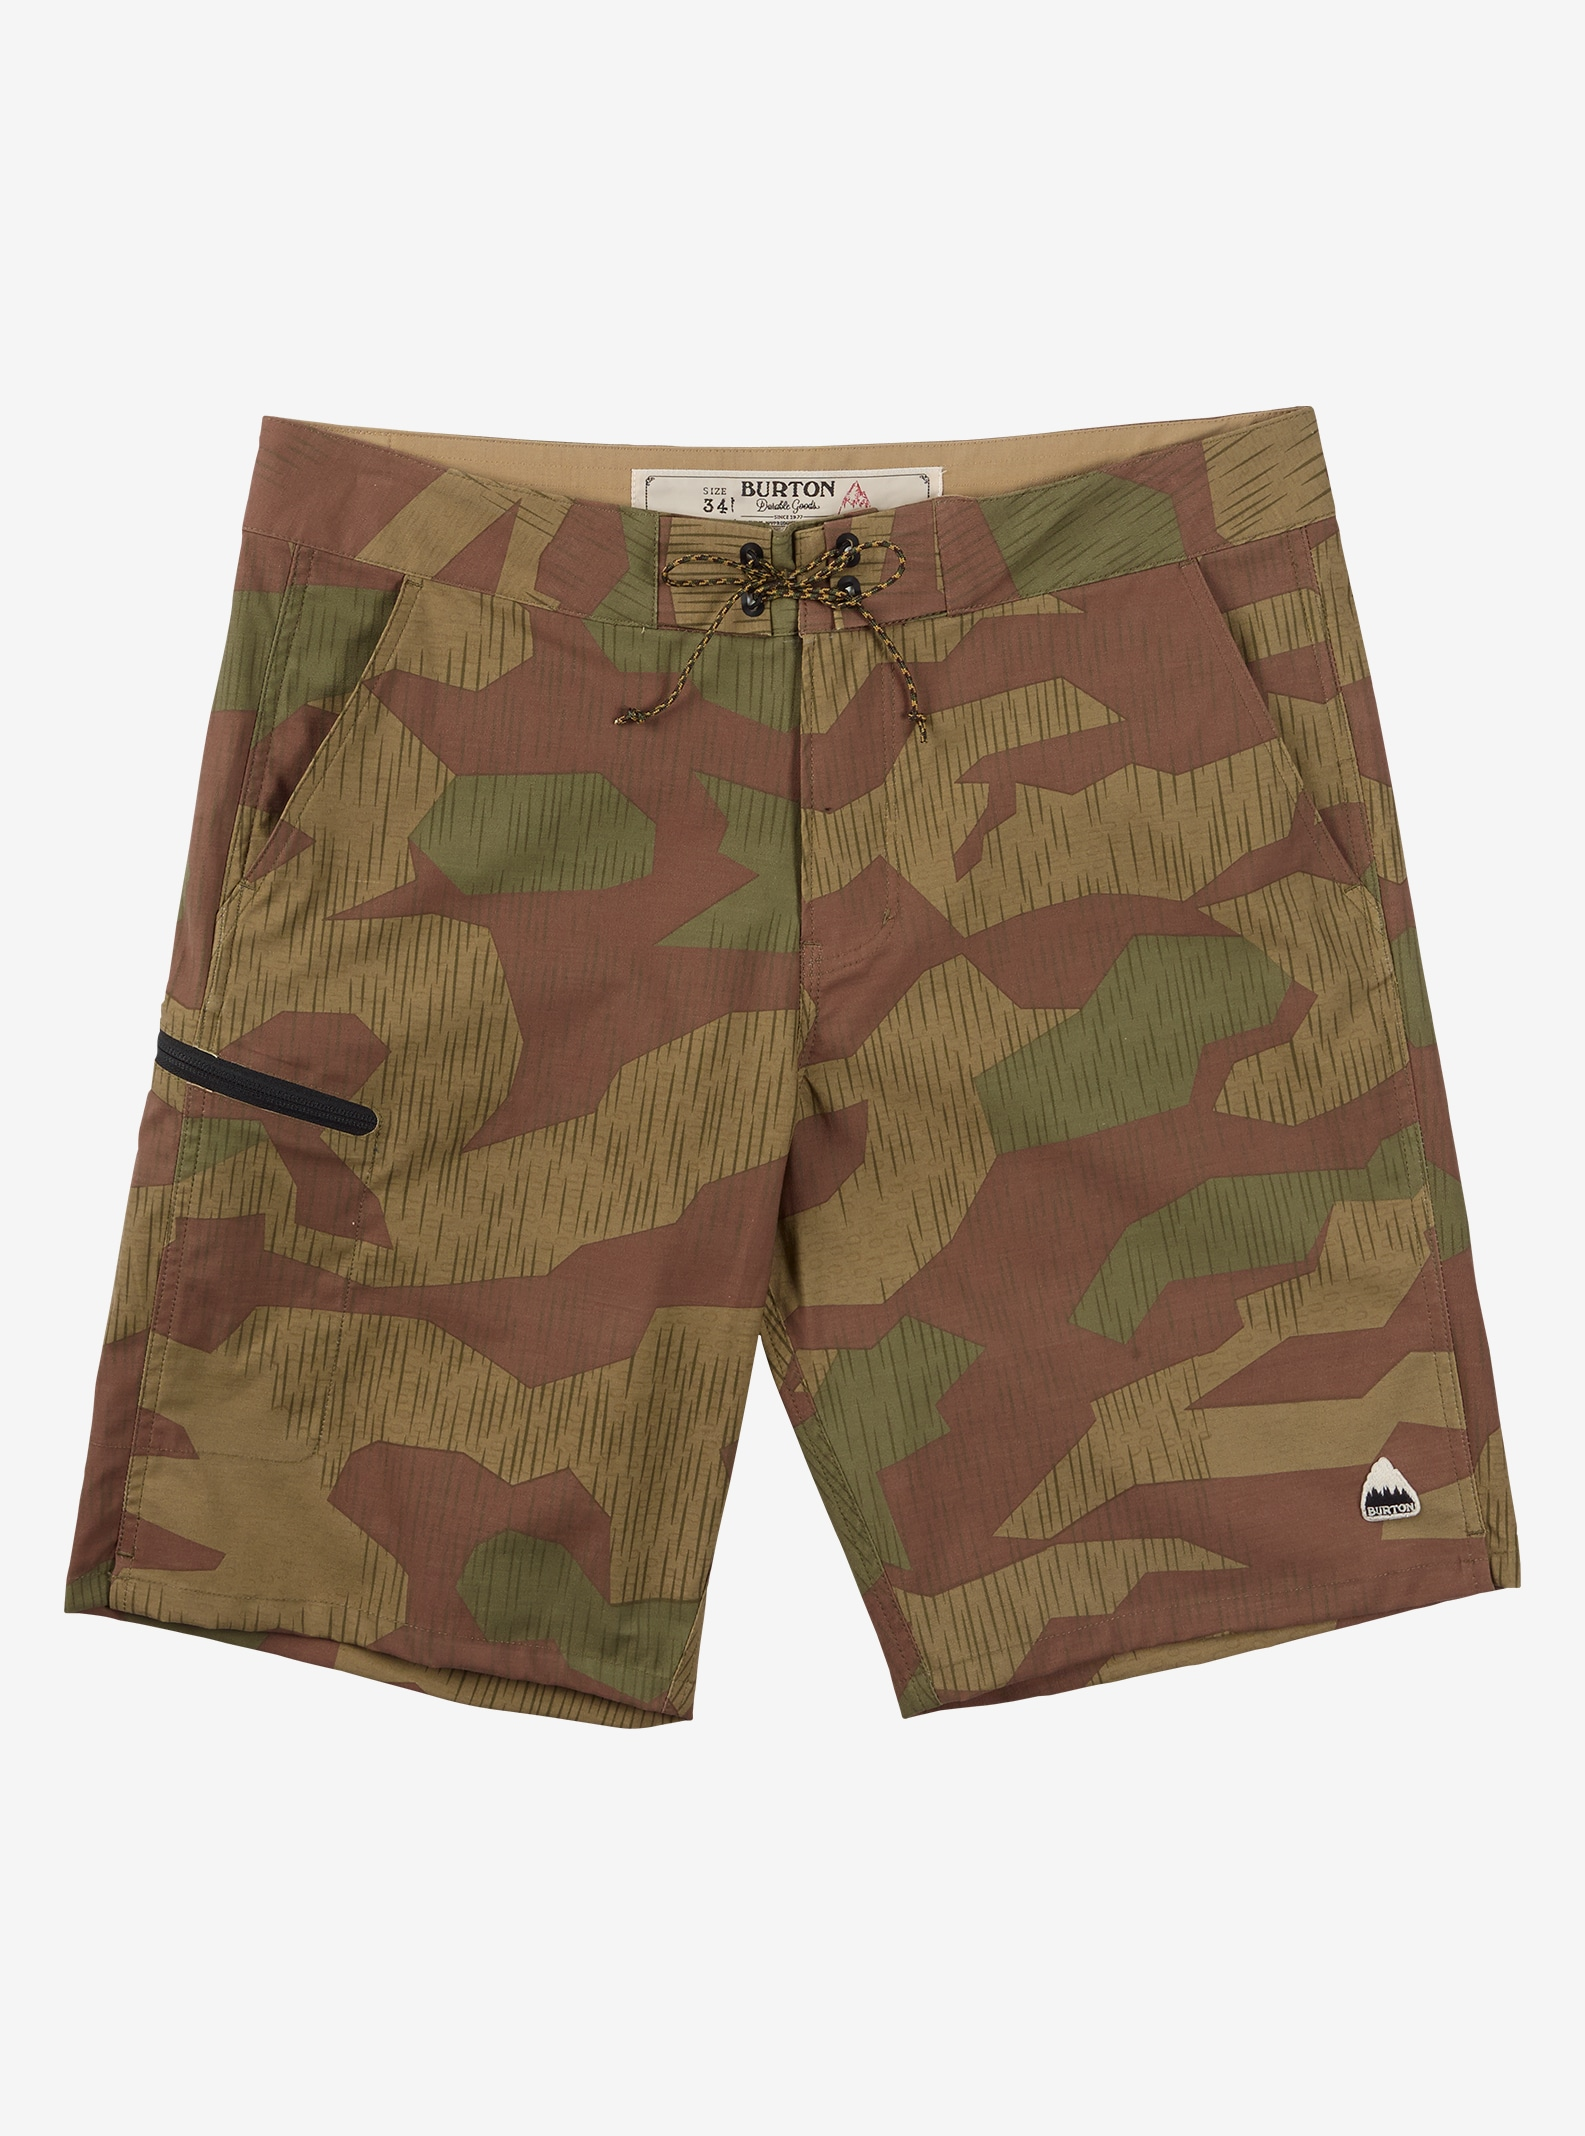 Burton Moxie Boardshort shown in Splinter Camo